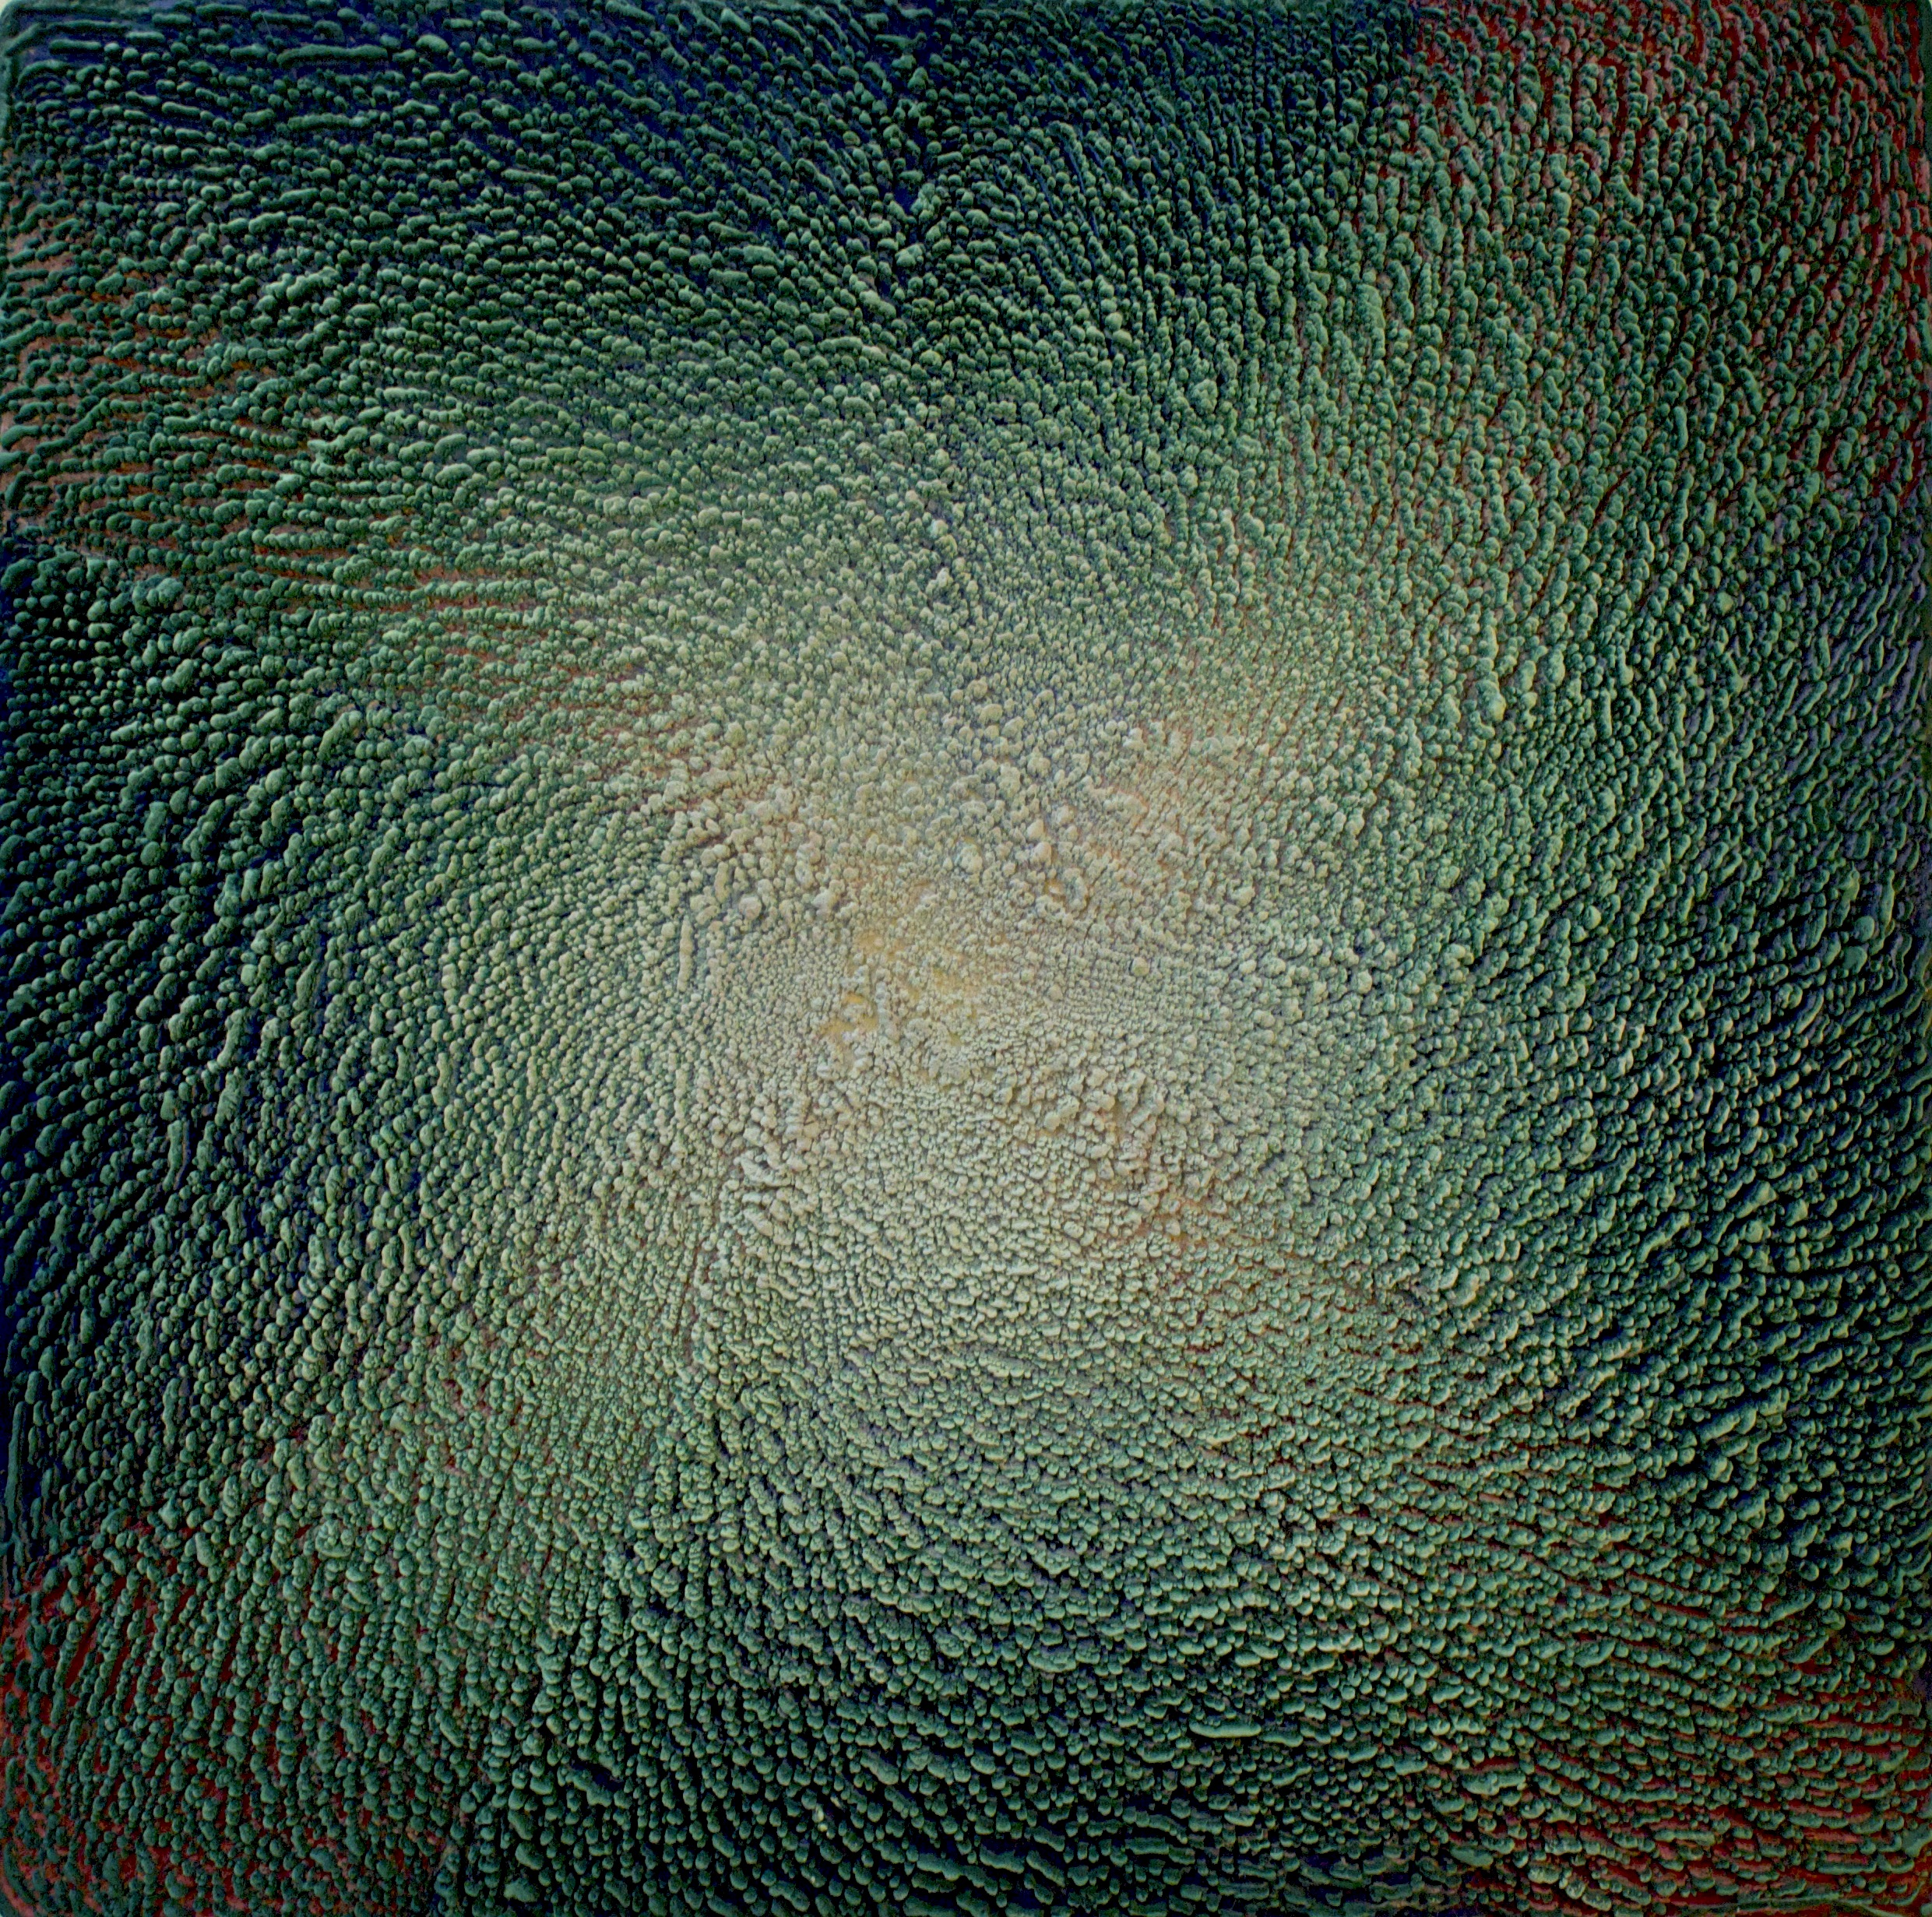 Rowena Boyd   The Cosmic Egg , 2016  Encaustic on board  98 x 98cm